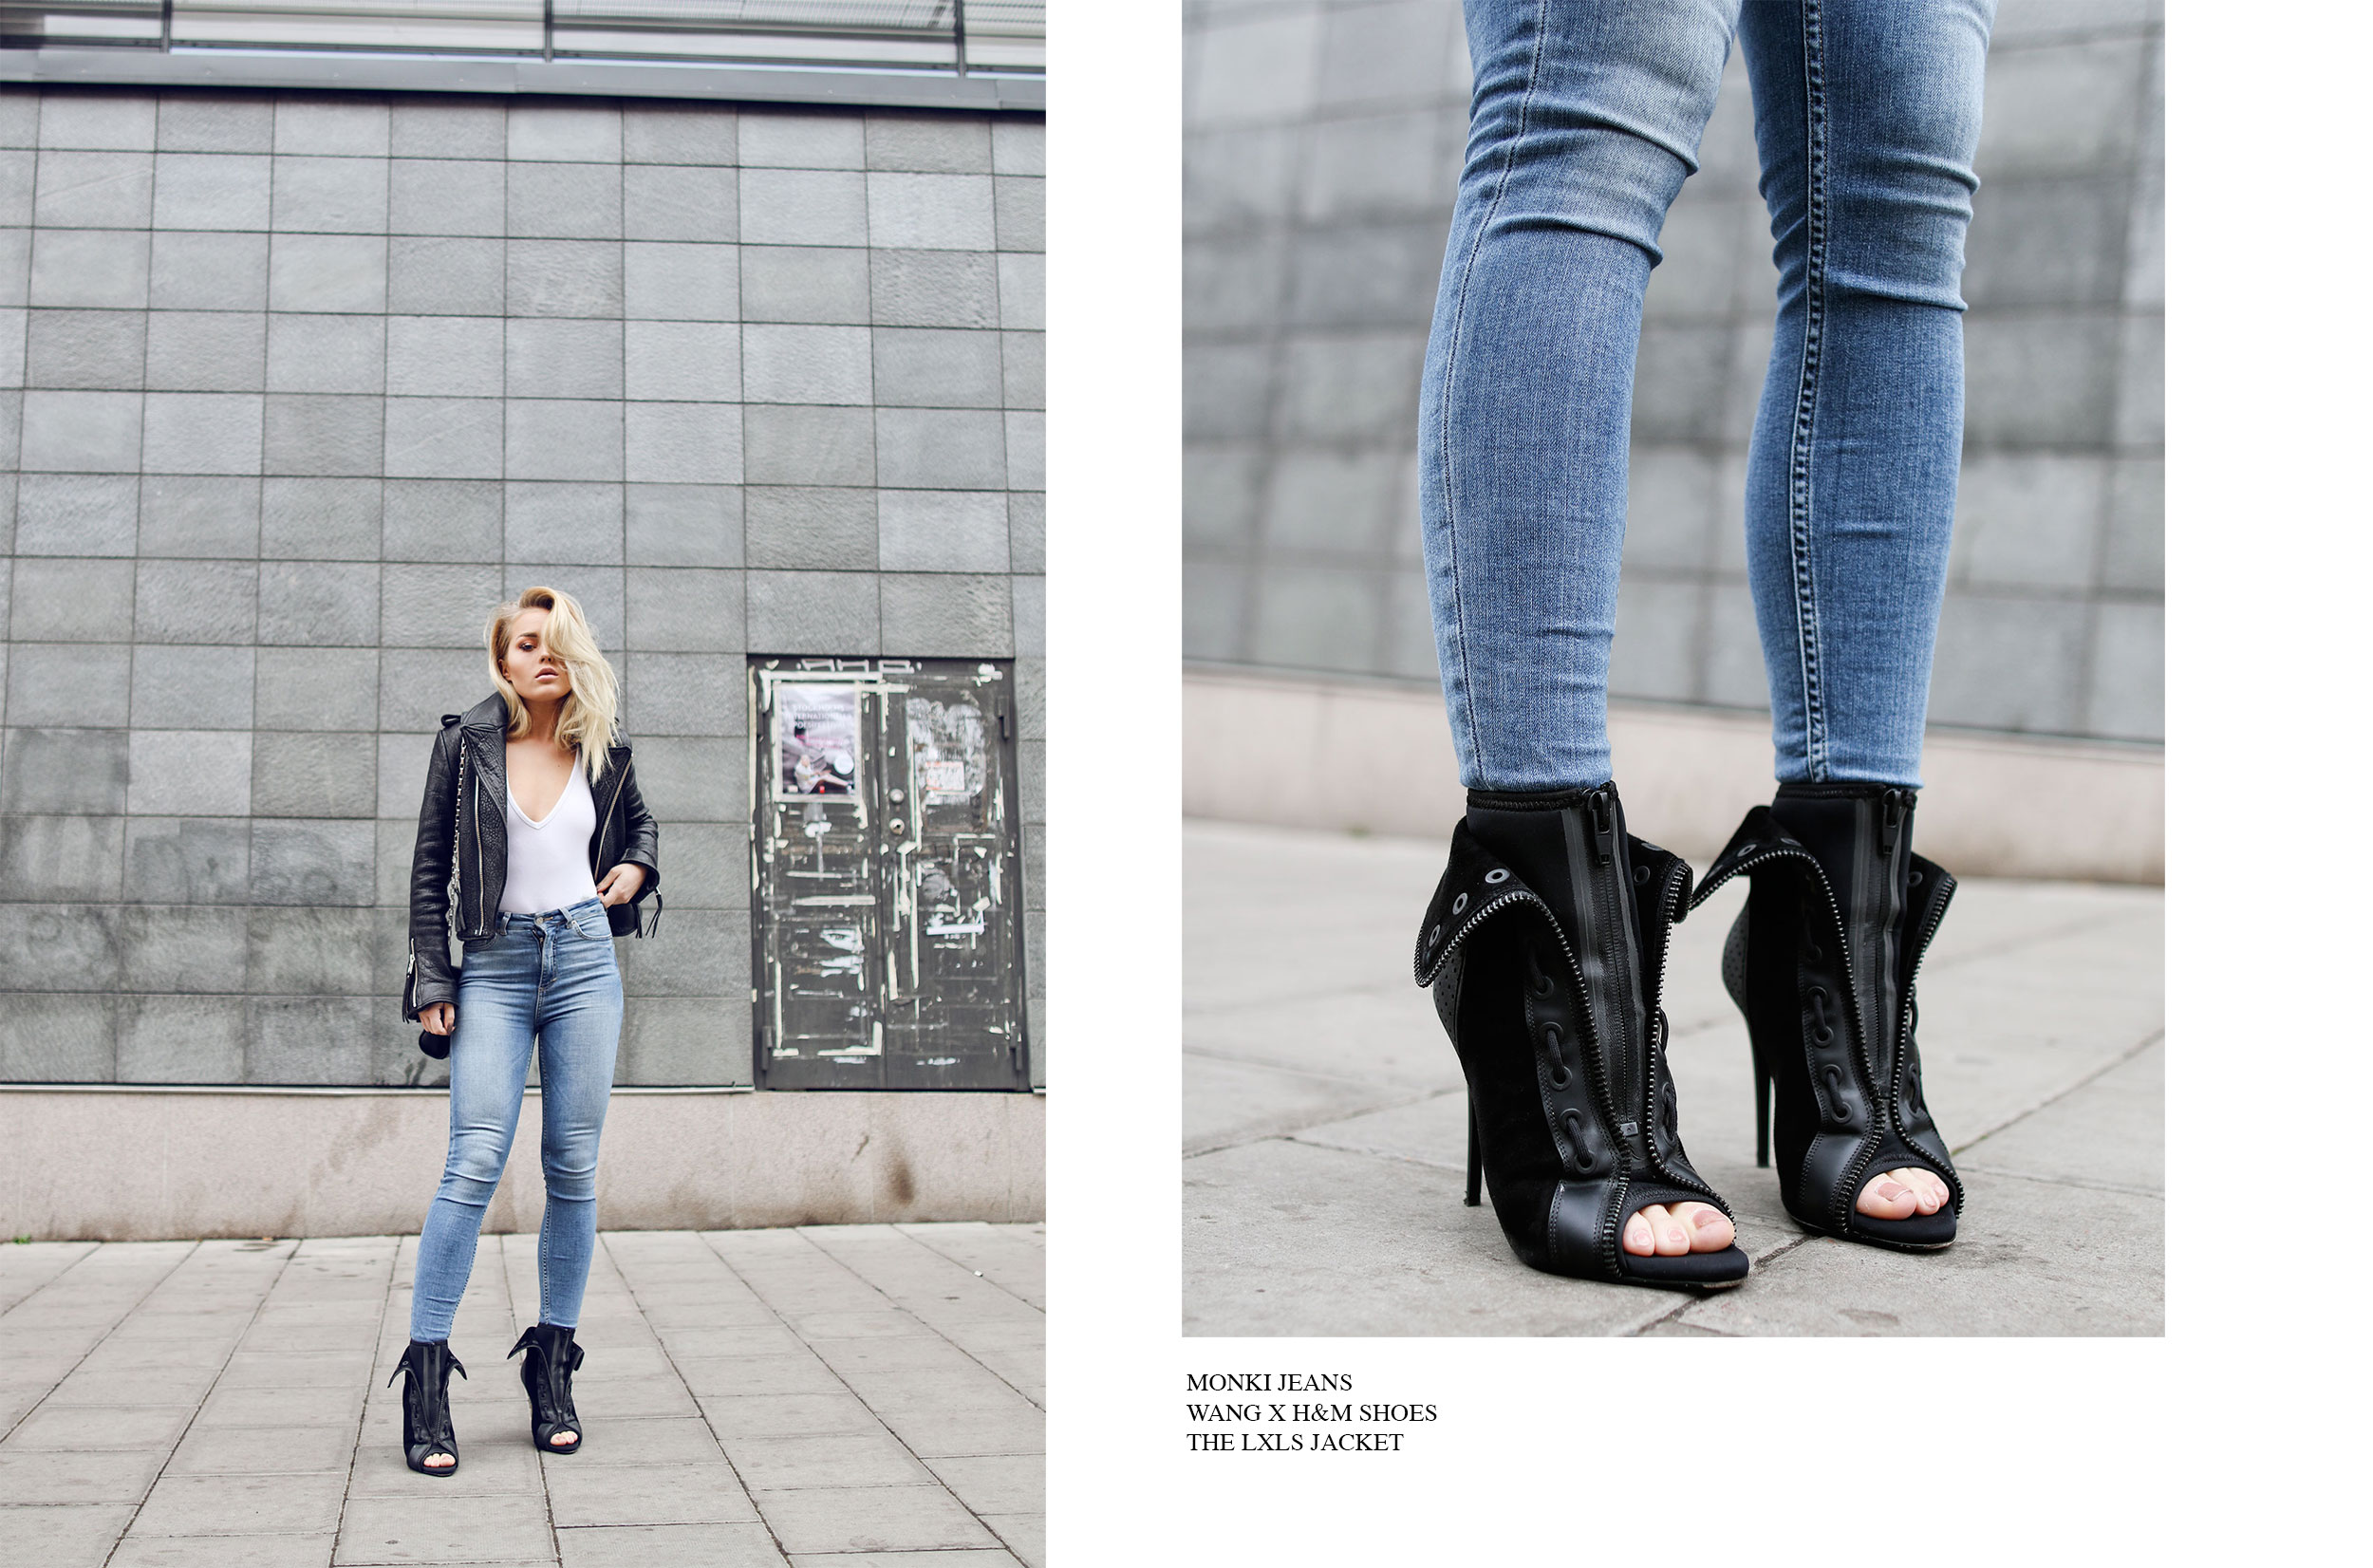 Angelica Blick looks great in the classic rocker girl style leather jacket and jeans. We especially love the badass heeled boots. Jeans: Monki, Shoes: H&M, Jacket: The LXLS.